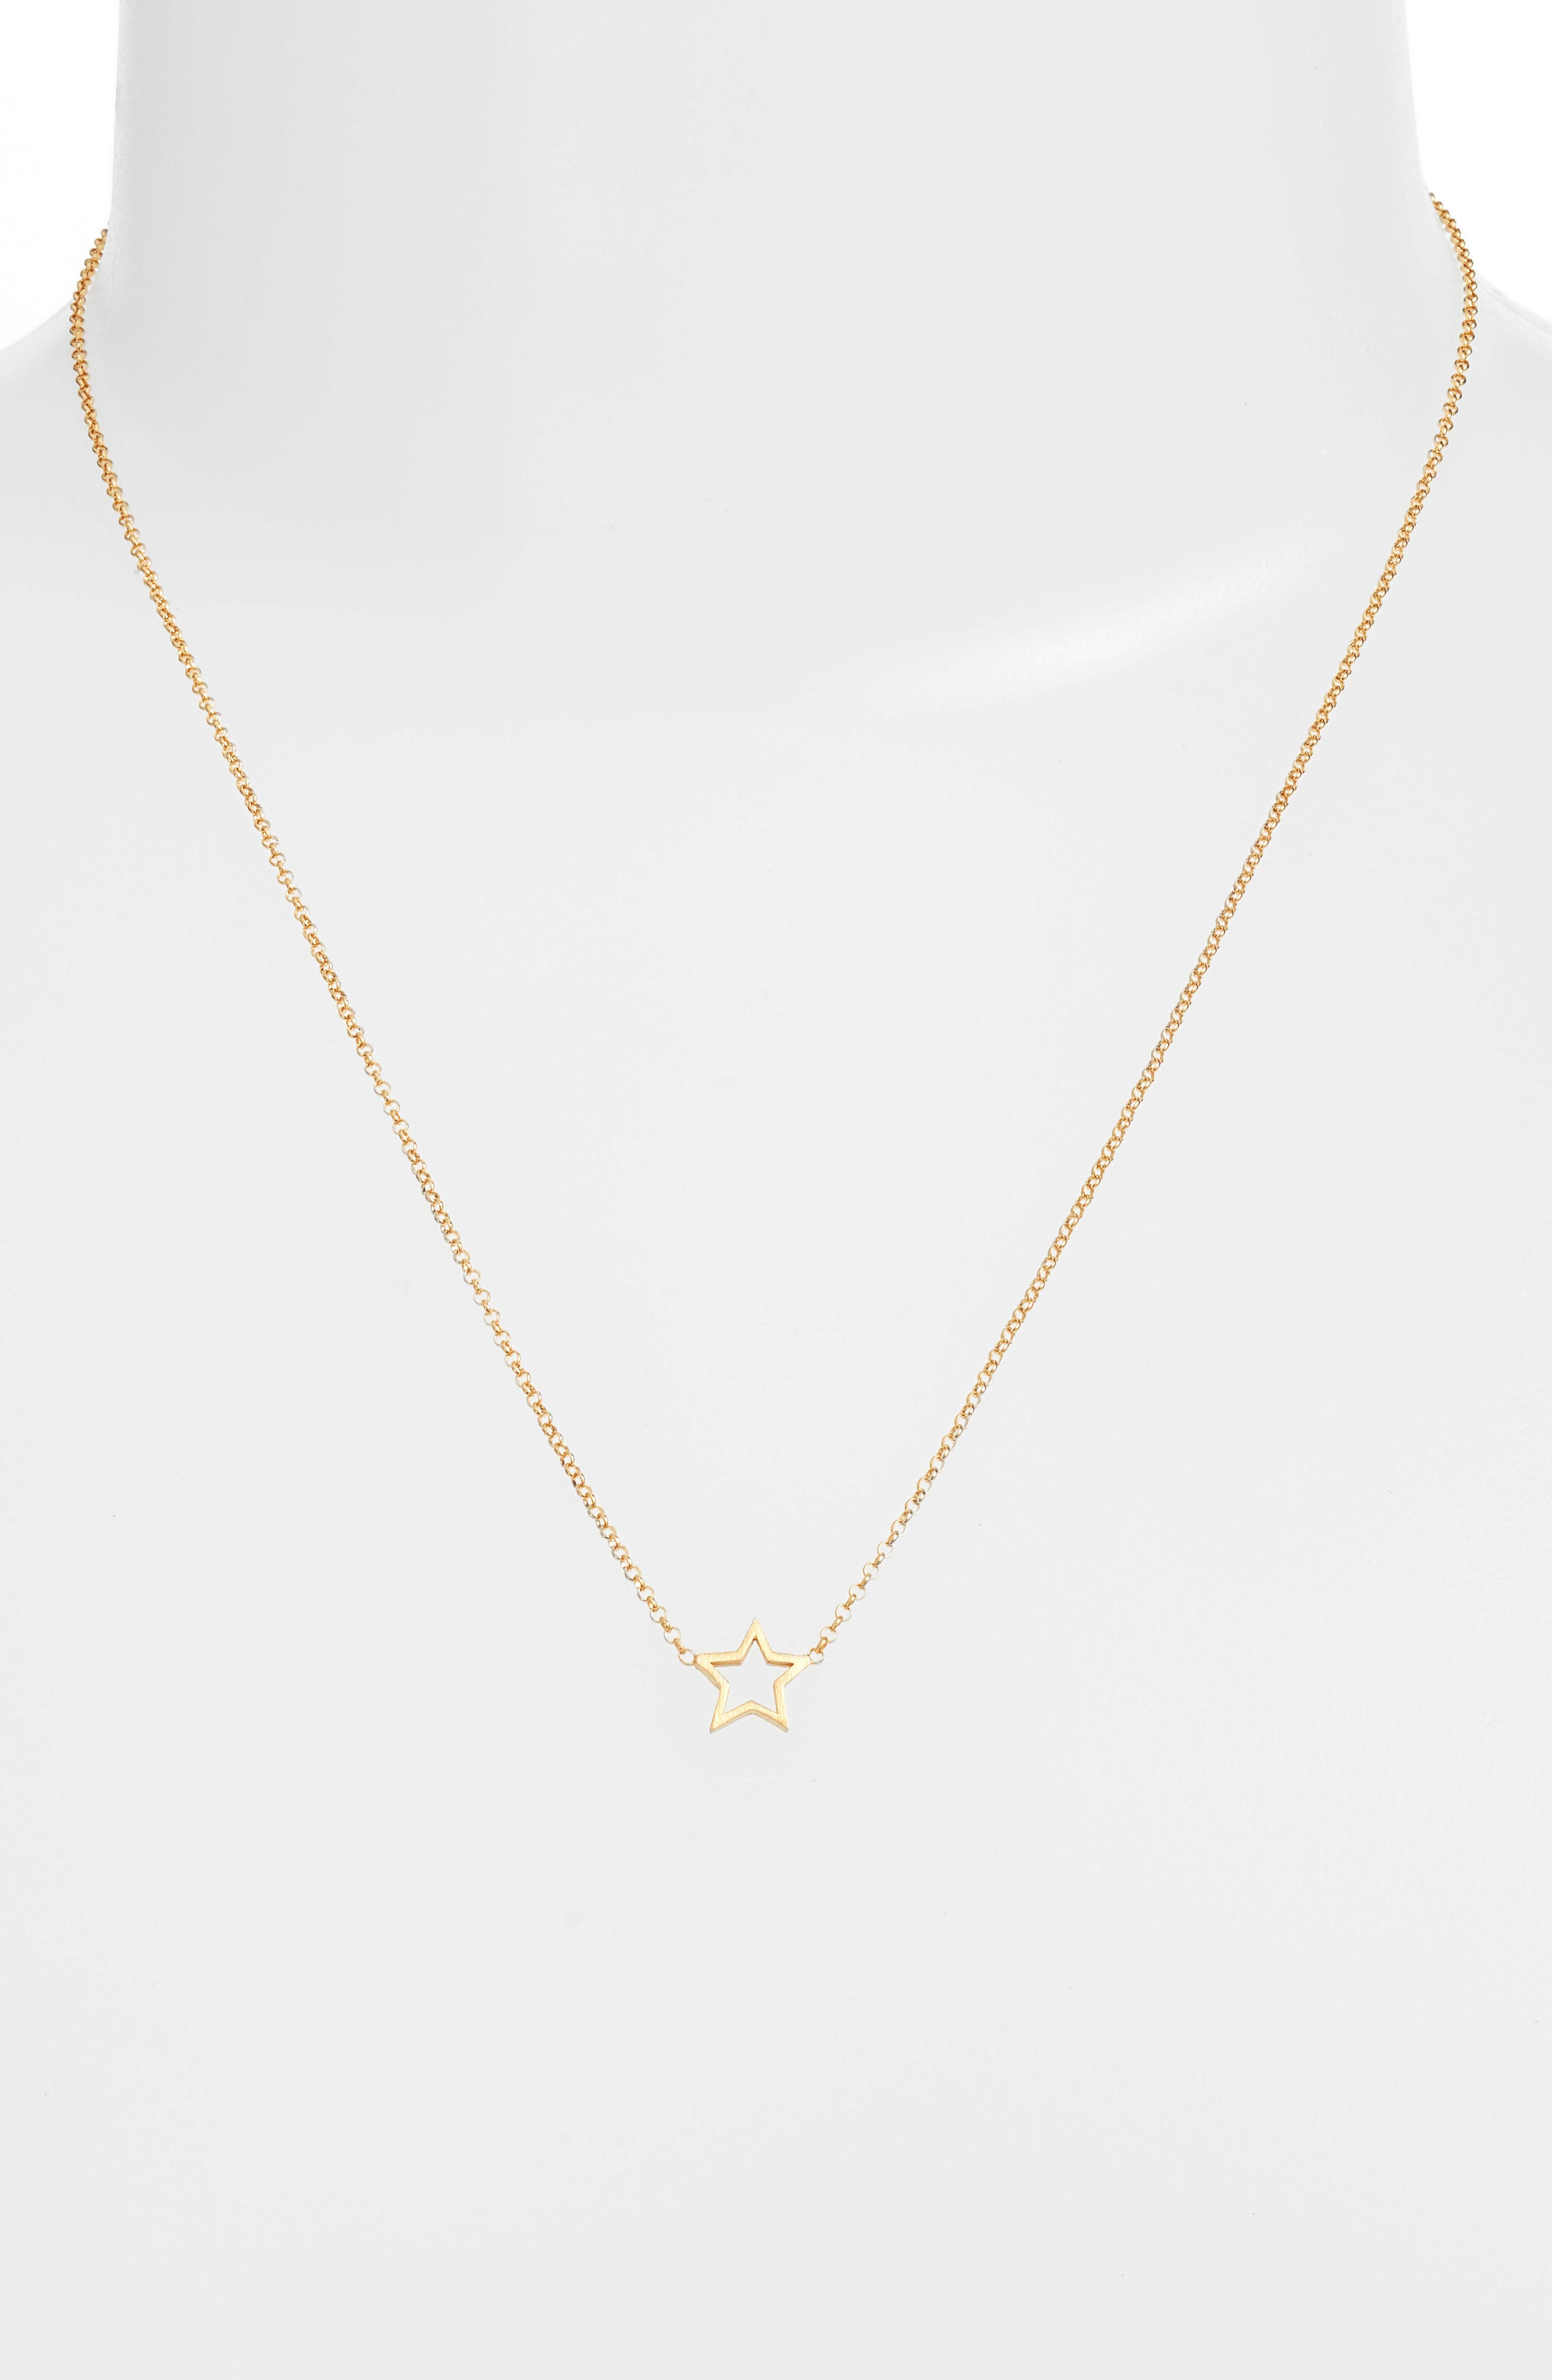 Sparkle with Beauty Necklace,                             Alternate thumbnail 2, color,                             710